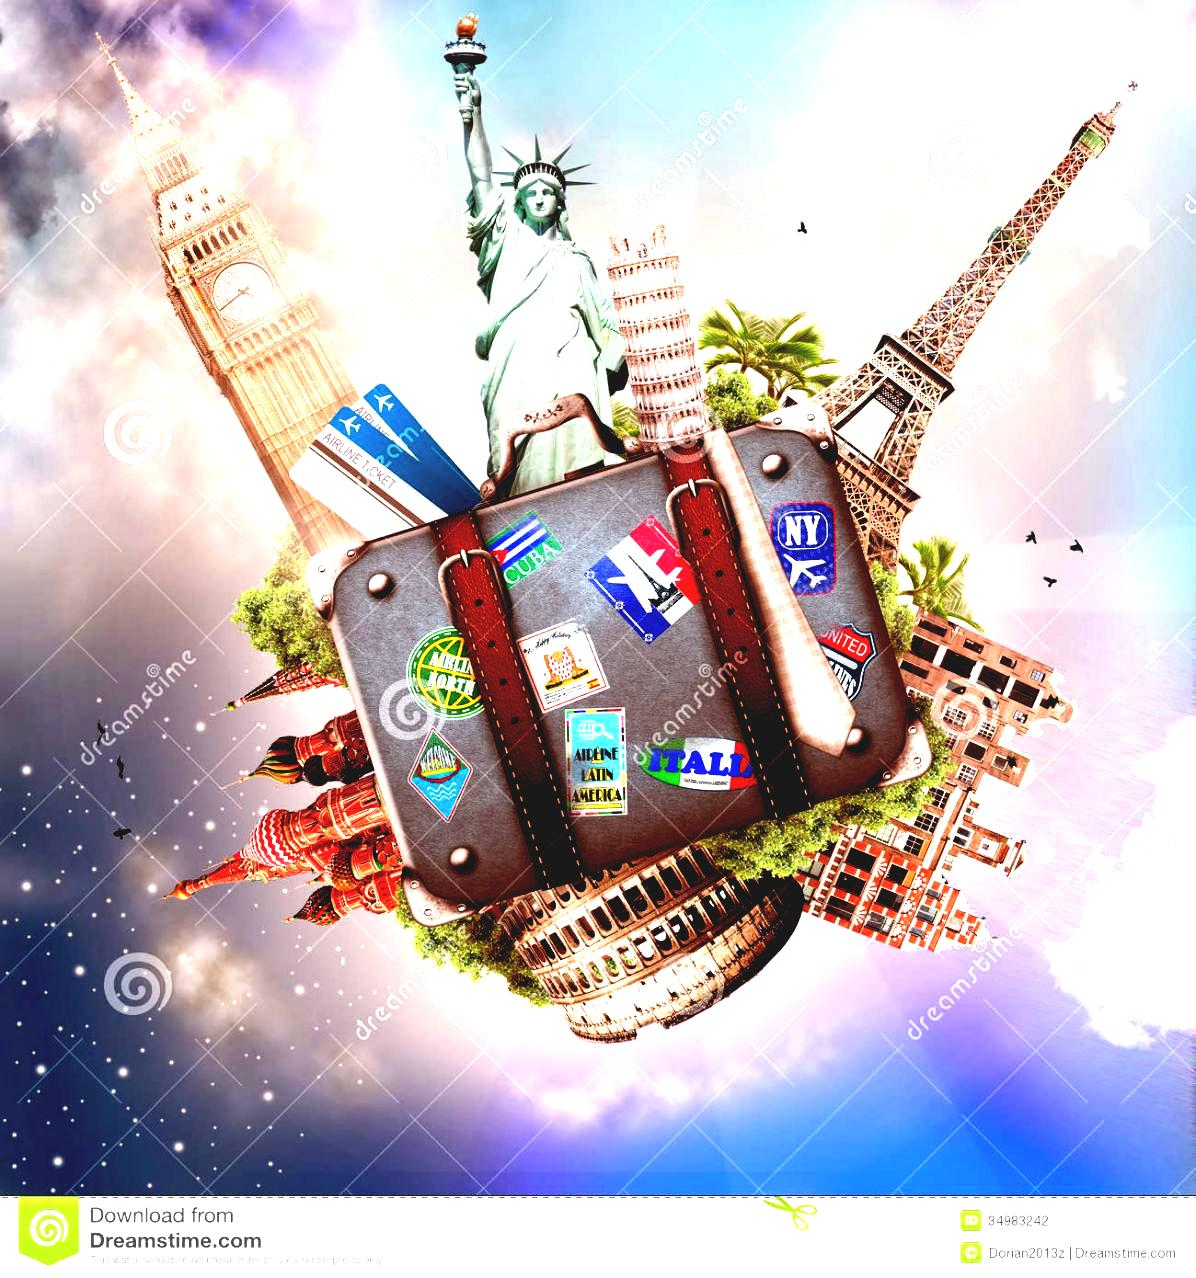 Travel Around The World Clipart And Trip Stock Photography Image.